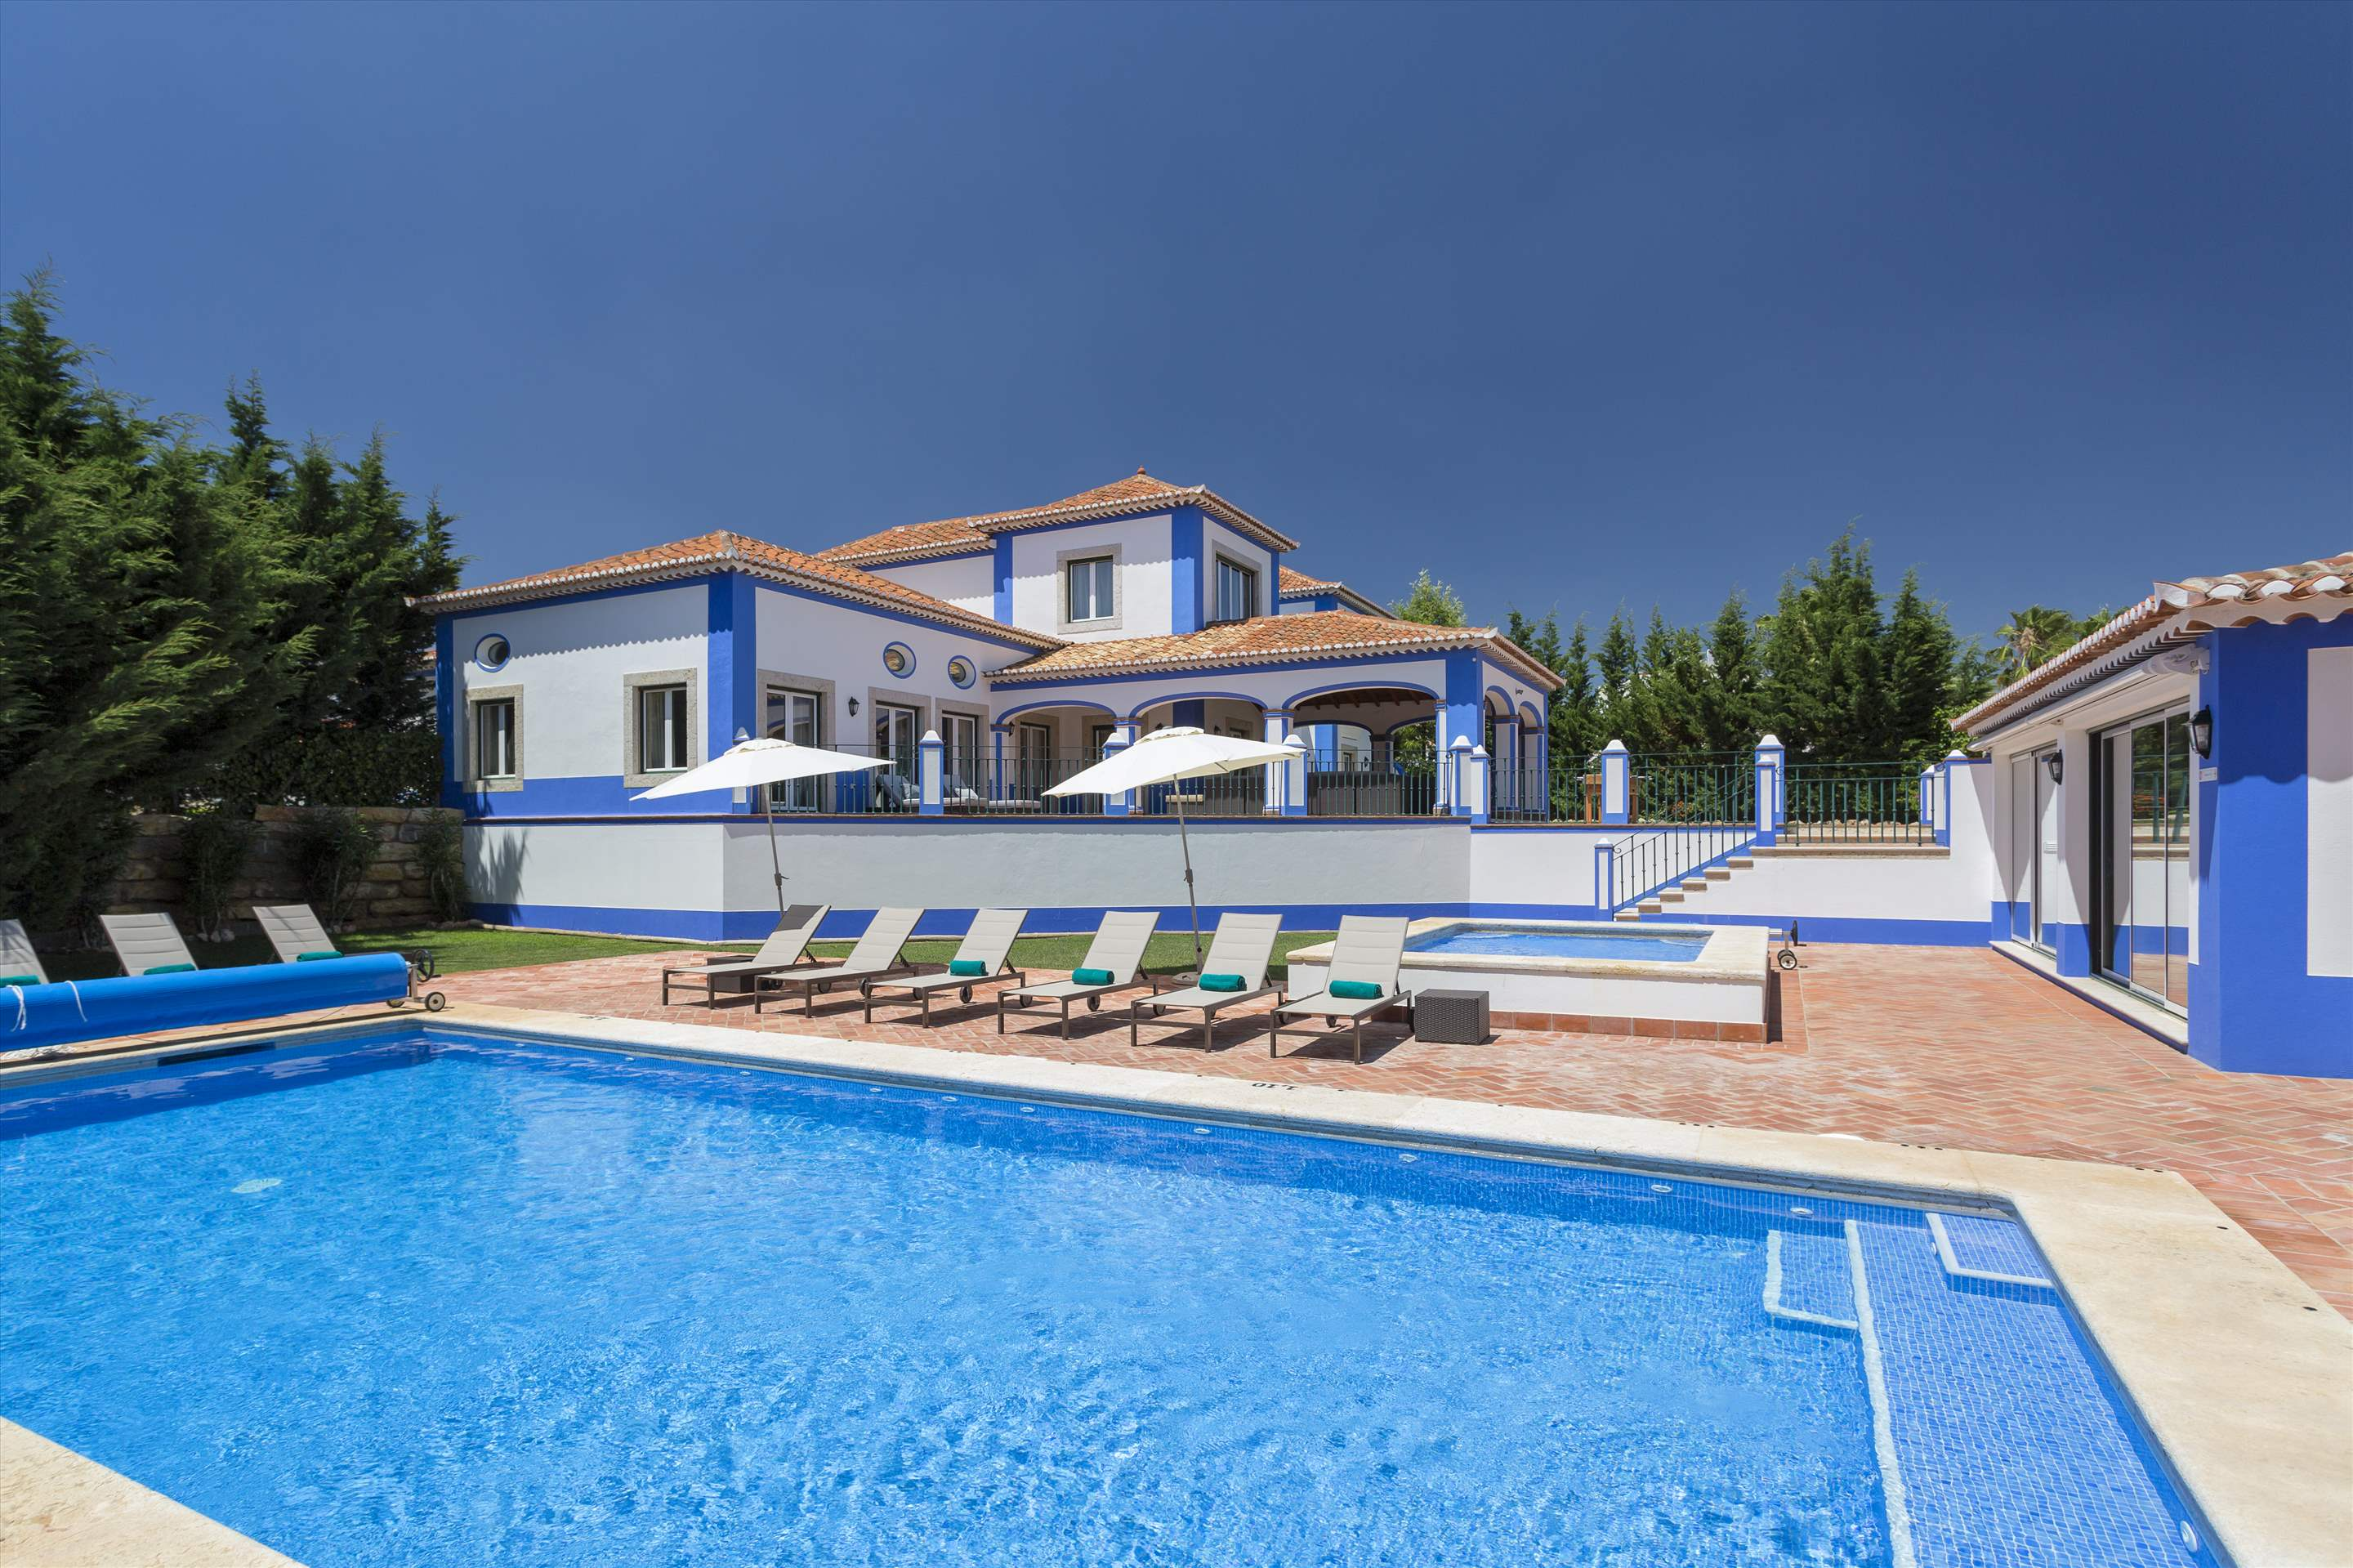 Villa Milho, Three Bedroom Rate, 3 bedroom villa in Vilamoura Area, Algarve